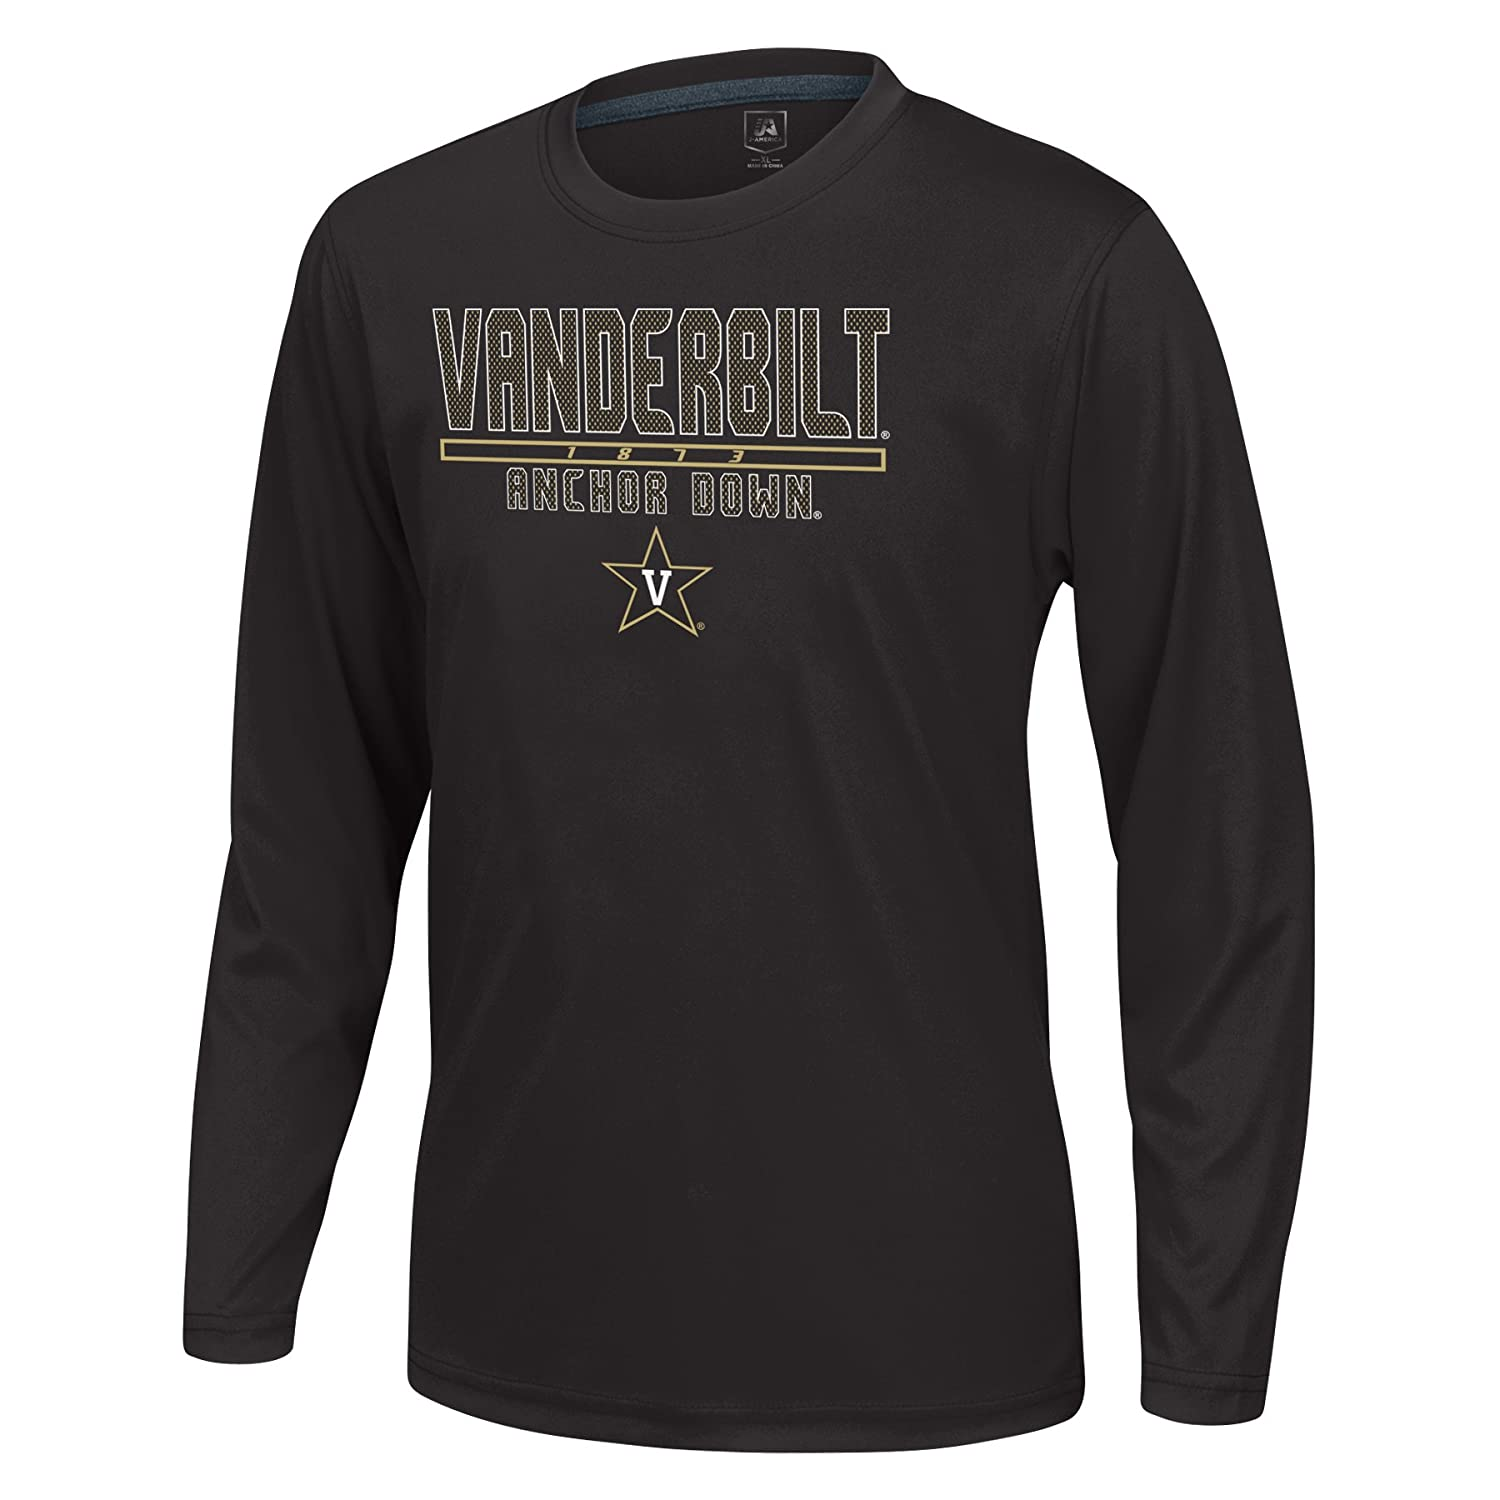 J America NCAA Vanderbilt Commodores Boys Youth School Slogan Long Sleeve Callout Poly Tee Black X-Large